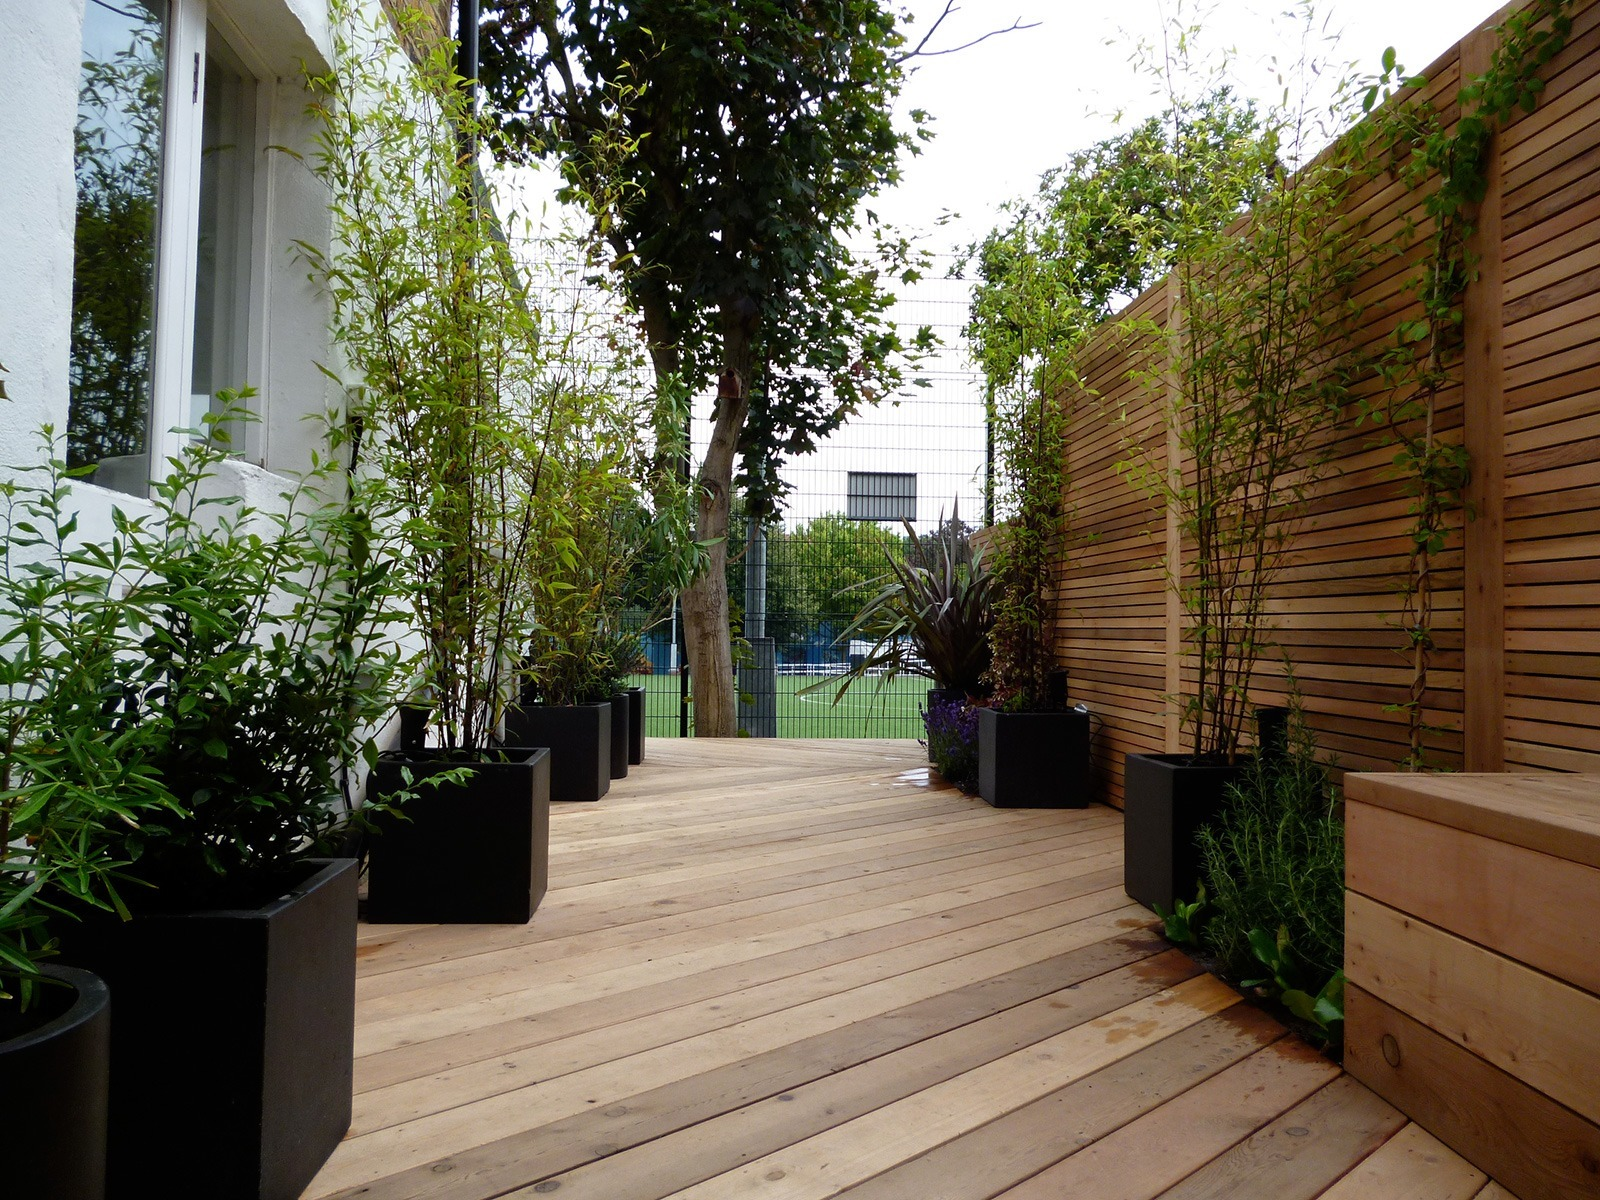 The garden feels suddenly larger. The smart black planters contribute to the minimalist effect.